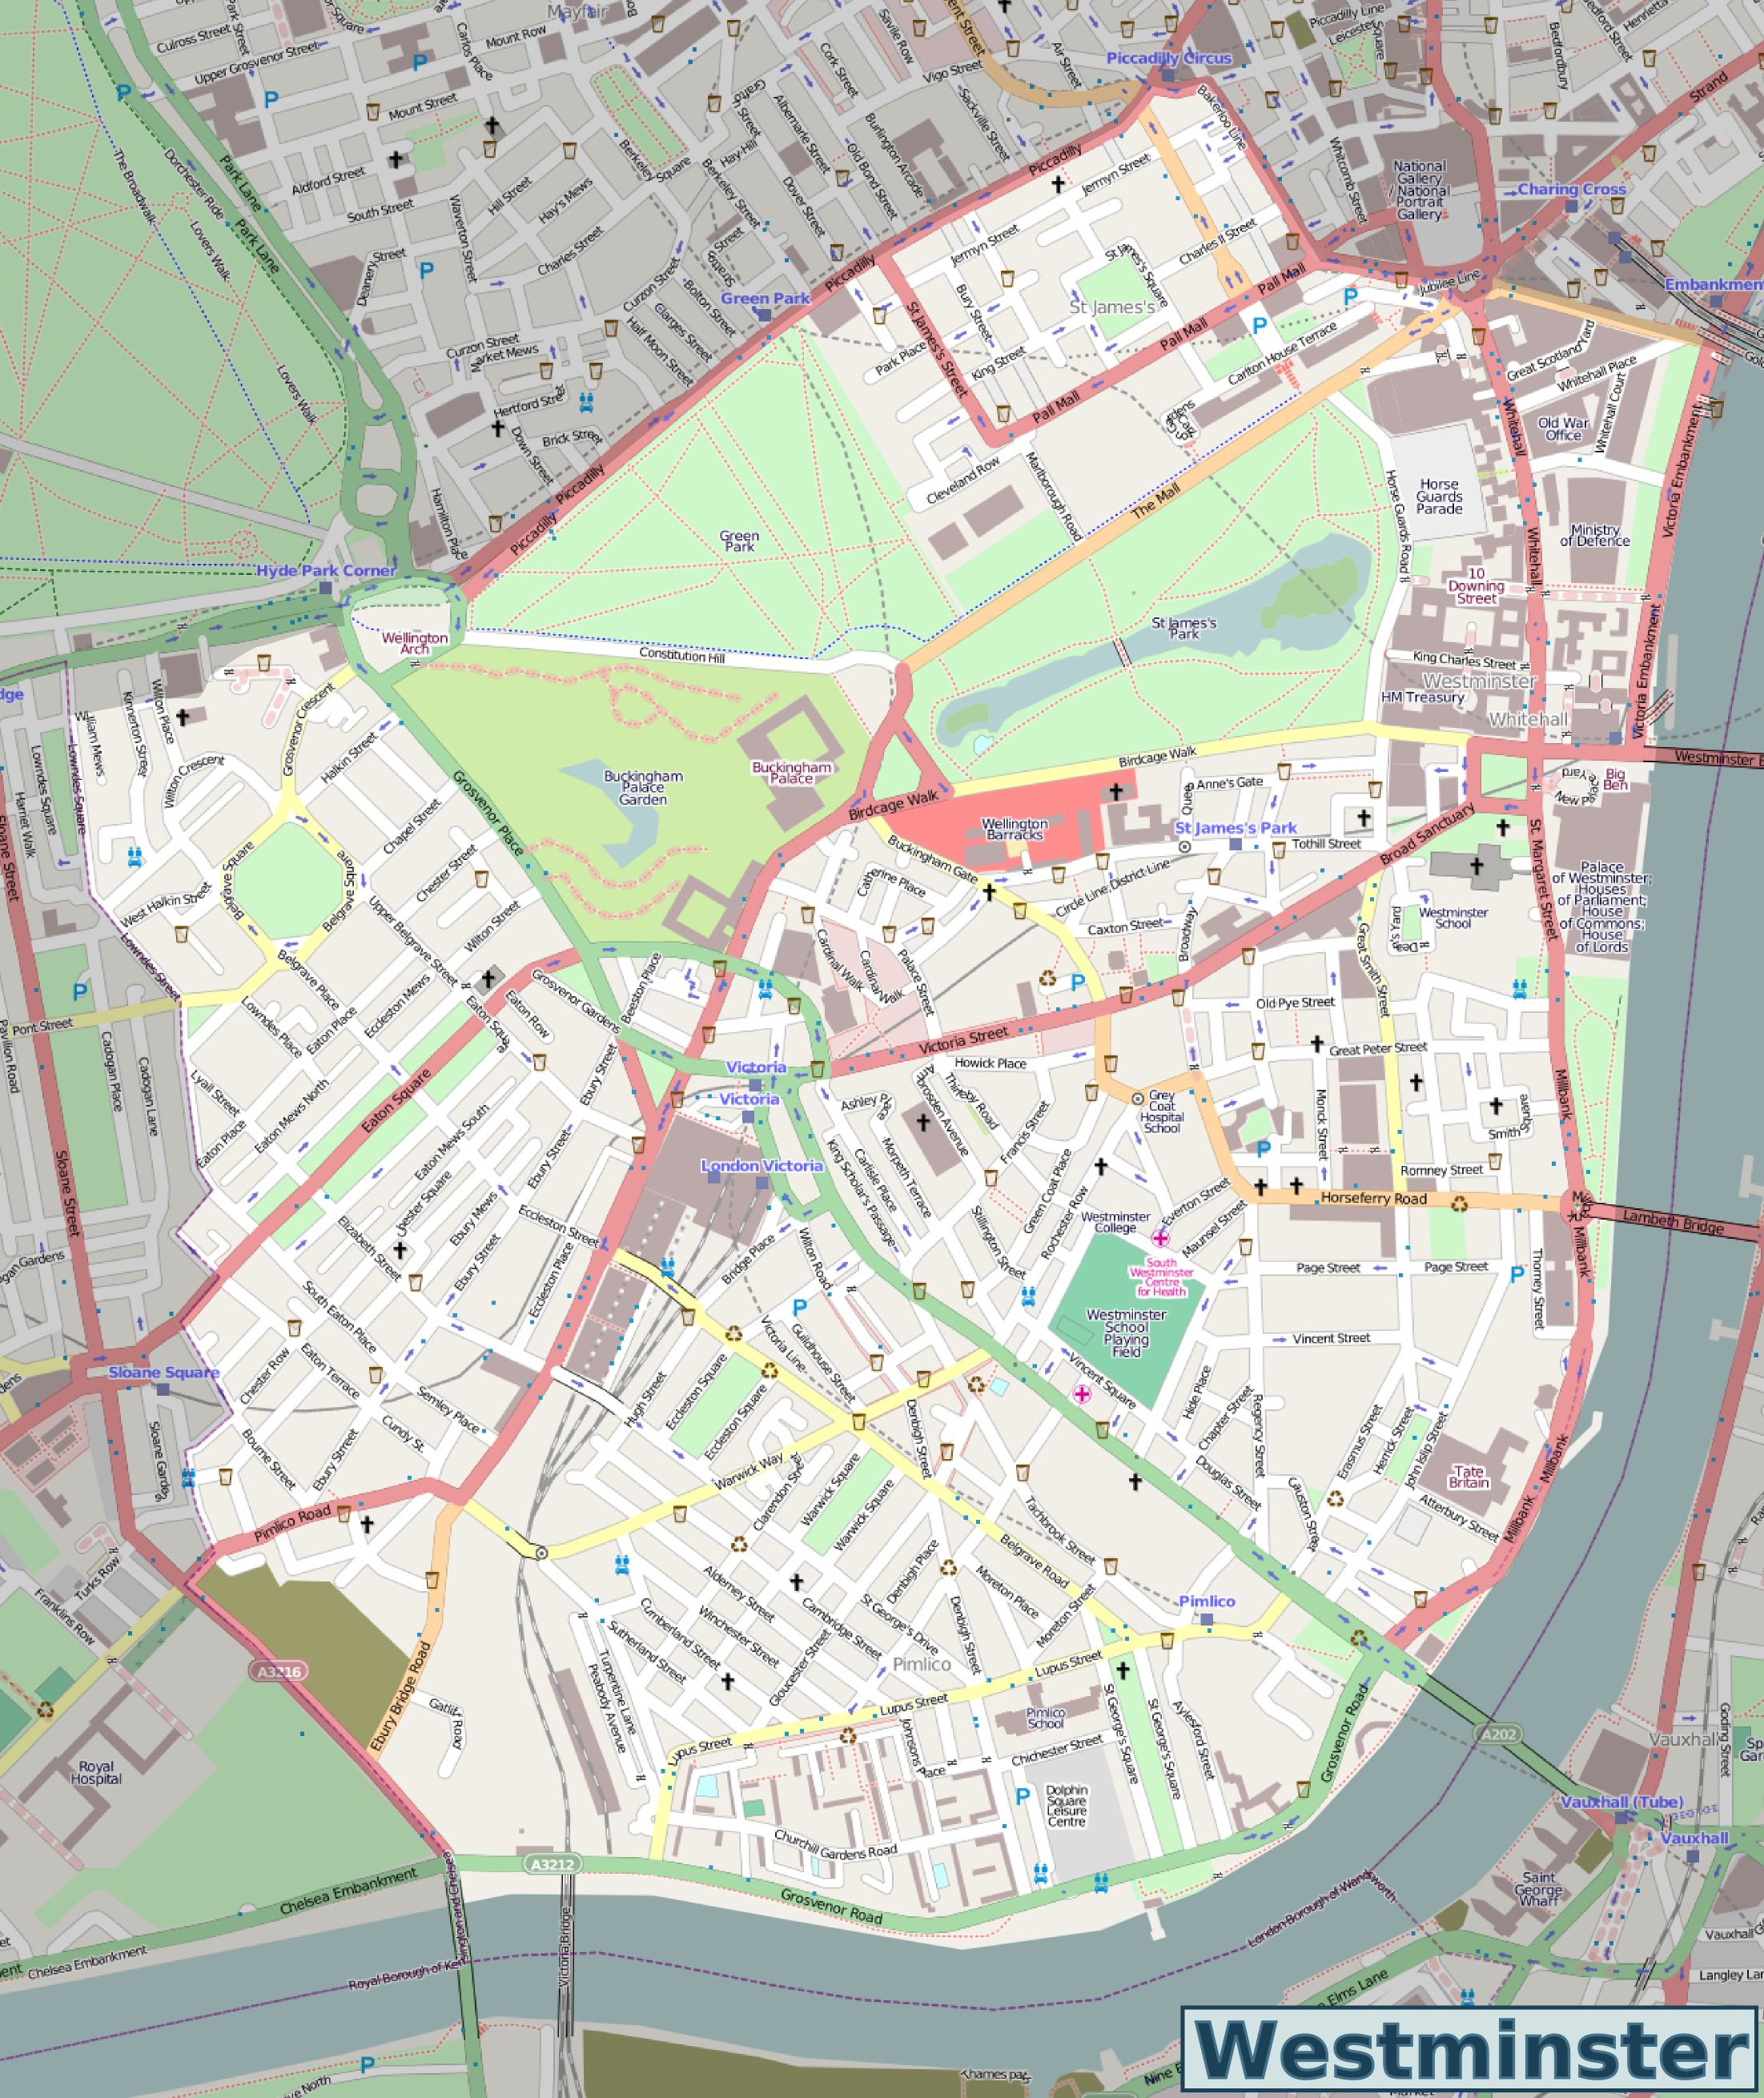 FileWestminster OSM mappng Wikimedia Commons